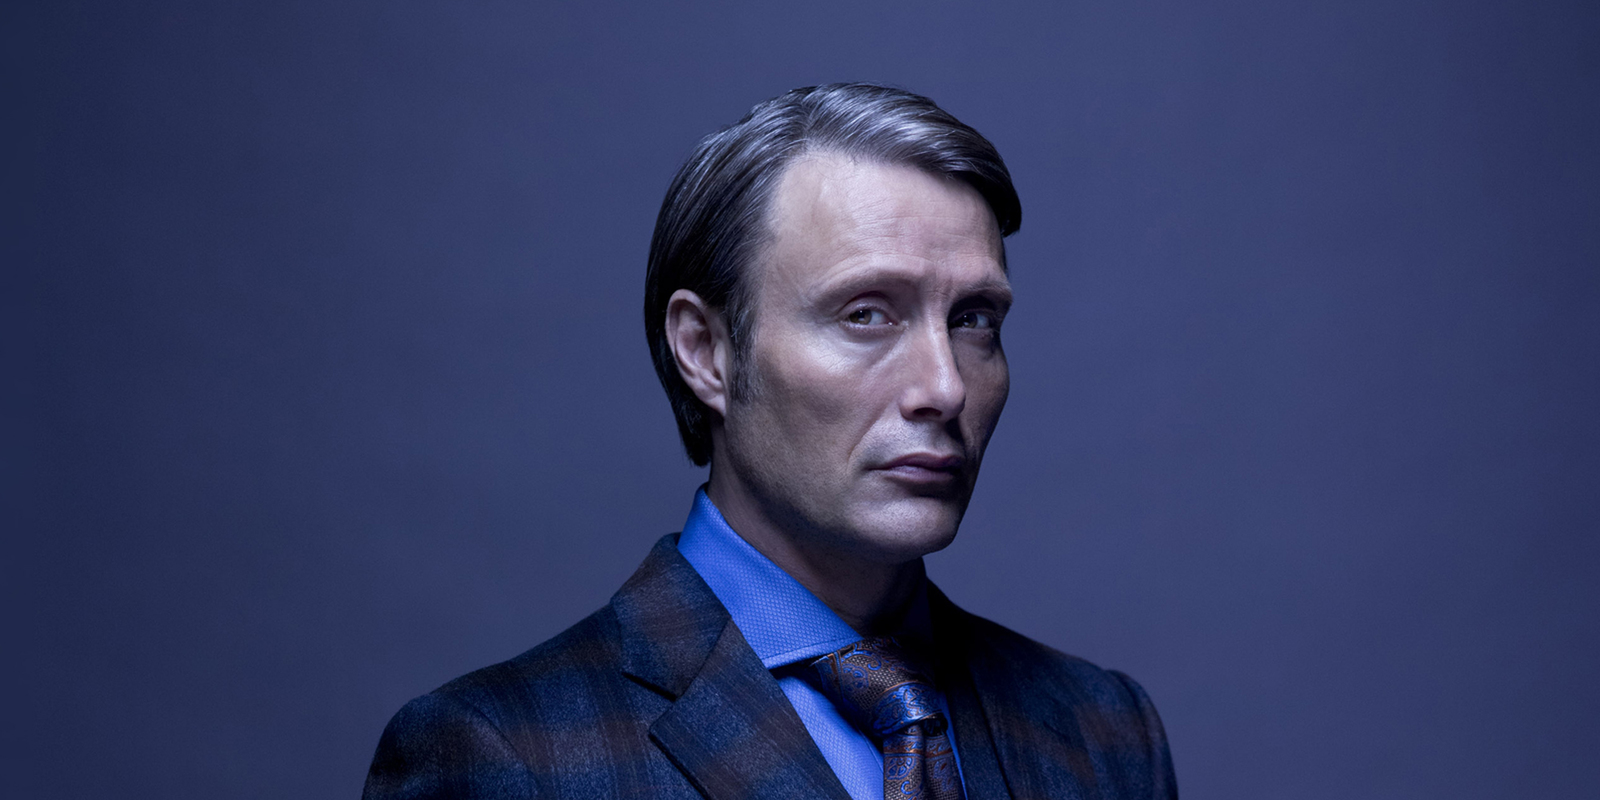 How the New Hannibal Lecter Became the Best-Dressed Man On TV